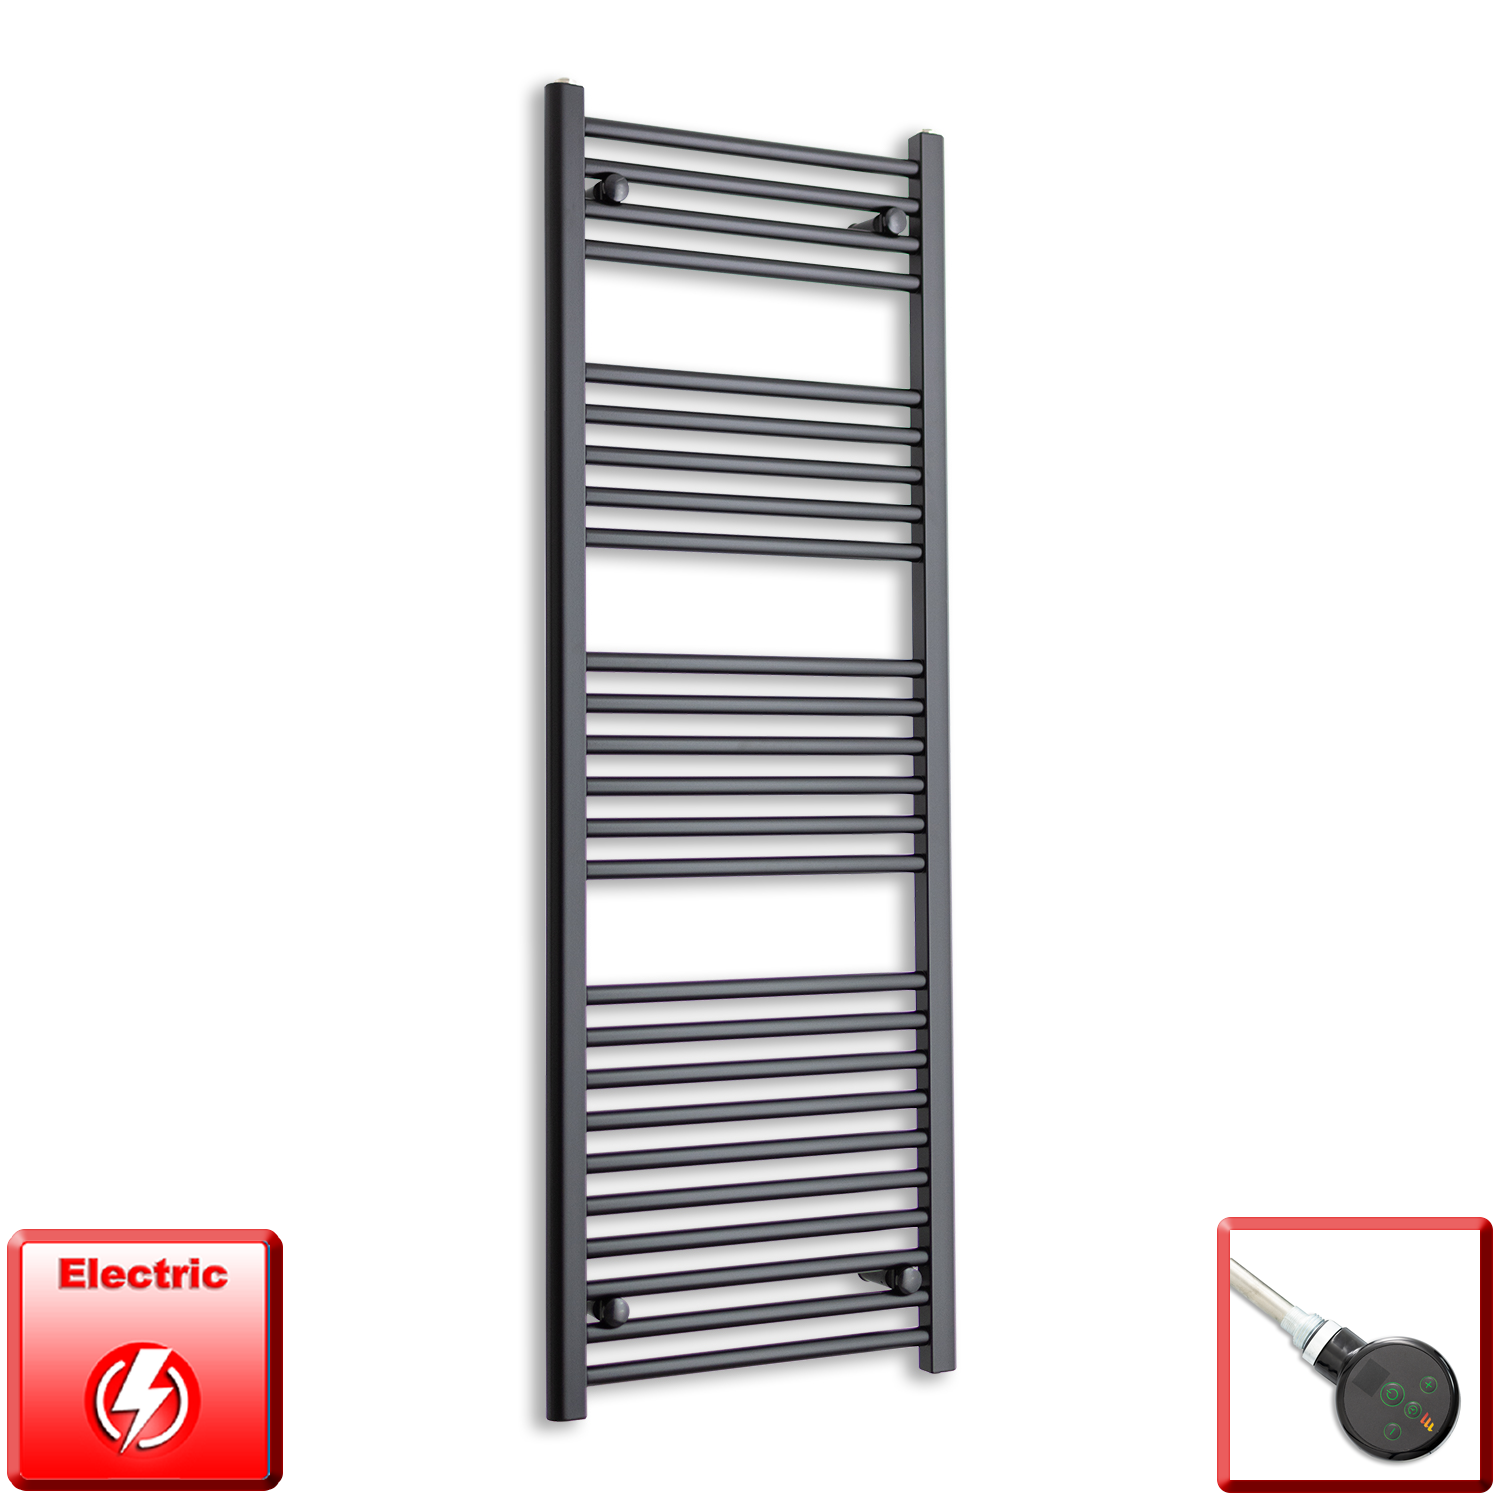 600mm Wide 1400mm High Flat Black Pre-Filled Electric Heated Towel Rail Radiator HTR,DIGI Thermostatic